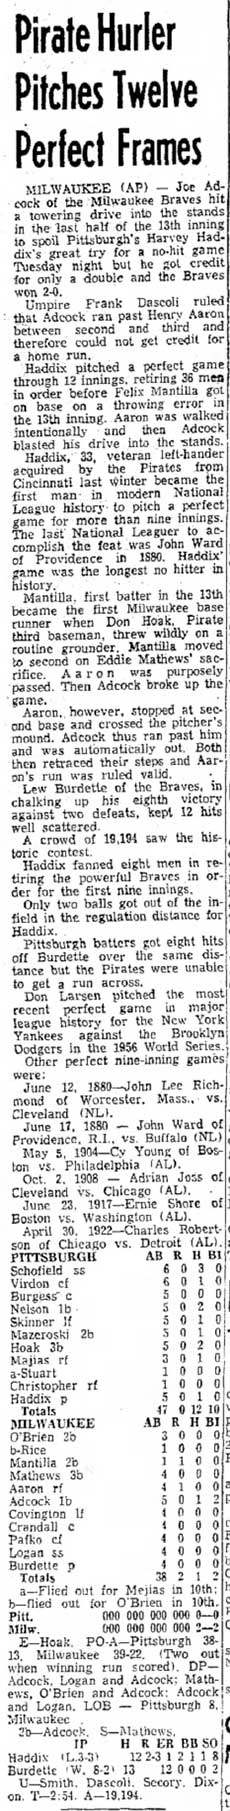 Harvey Haddix, Perfect Game